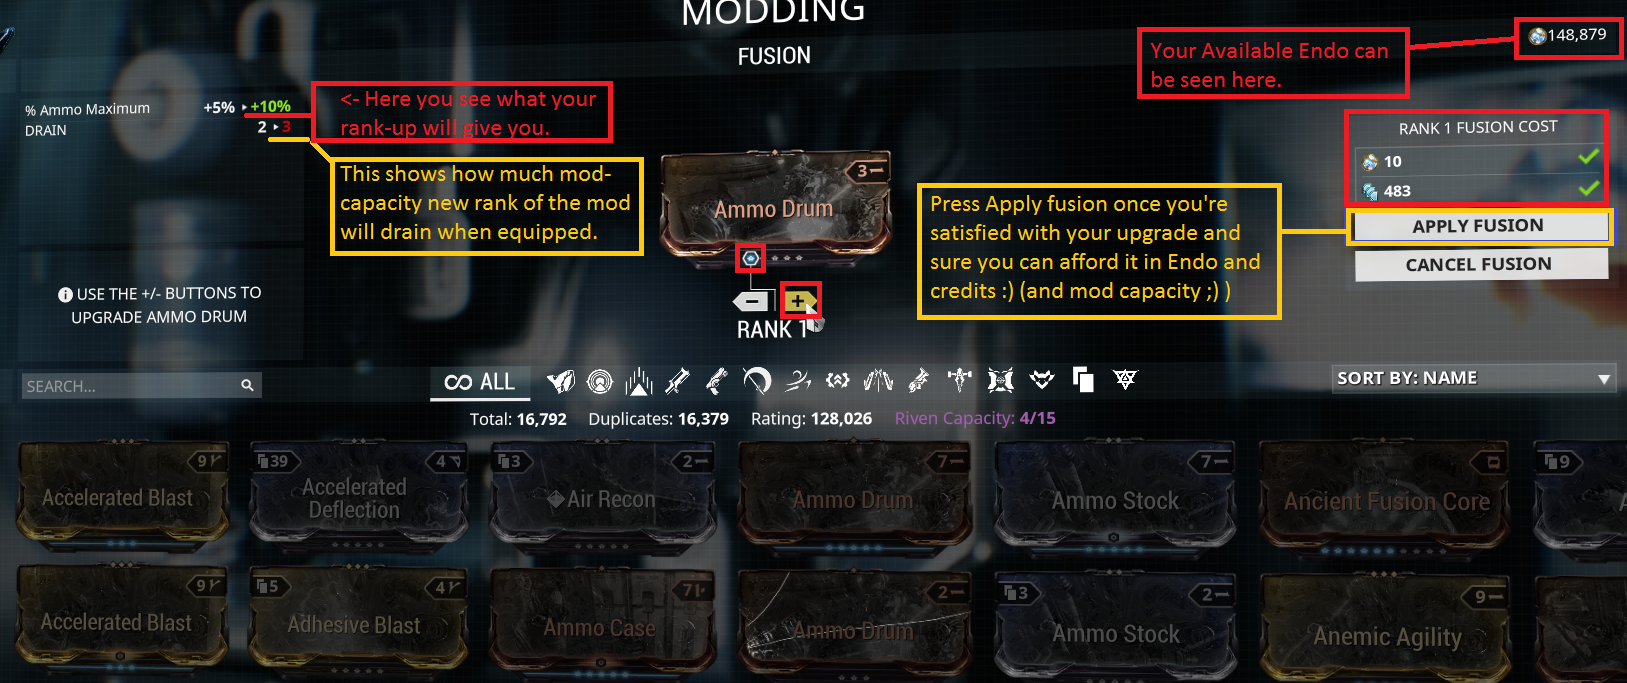 ranking up mods in mod segment